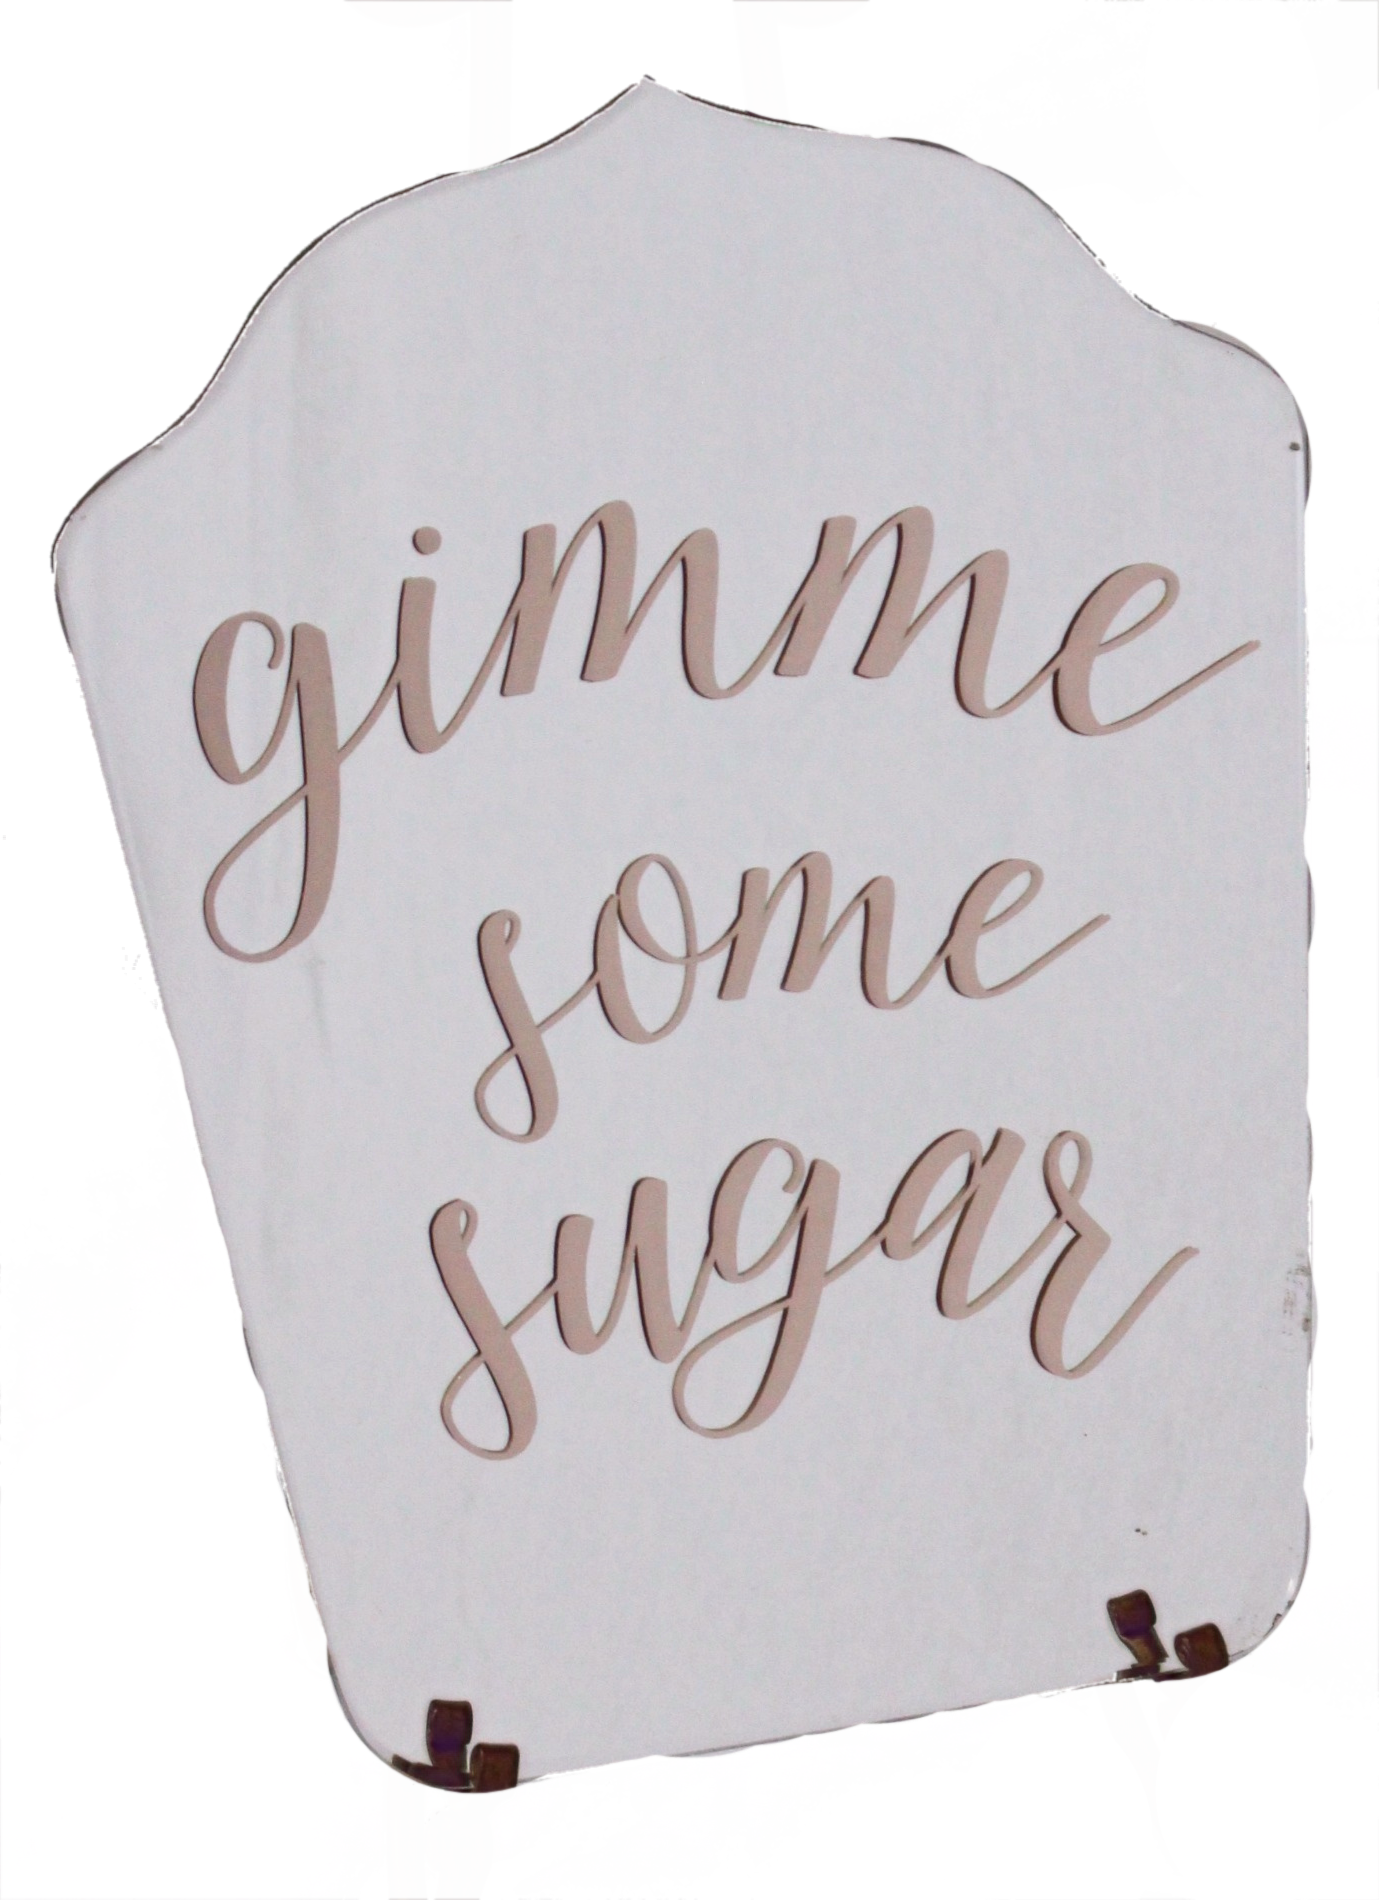 Gimme Some Sugar